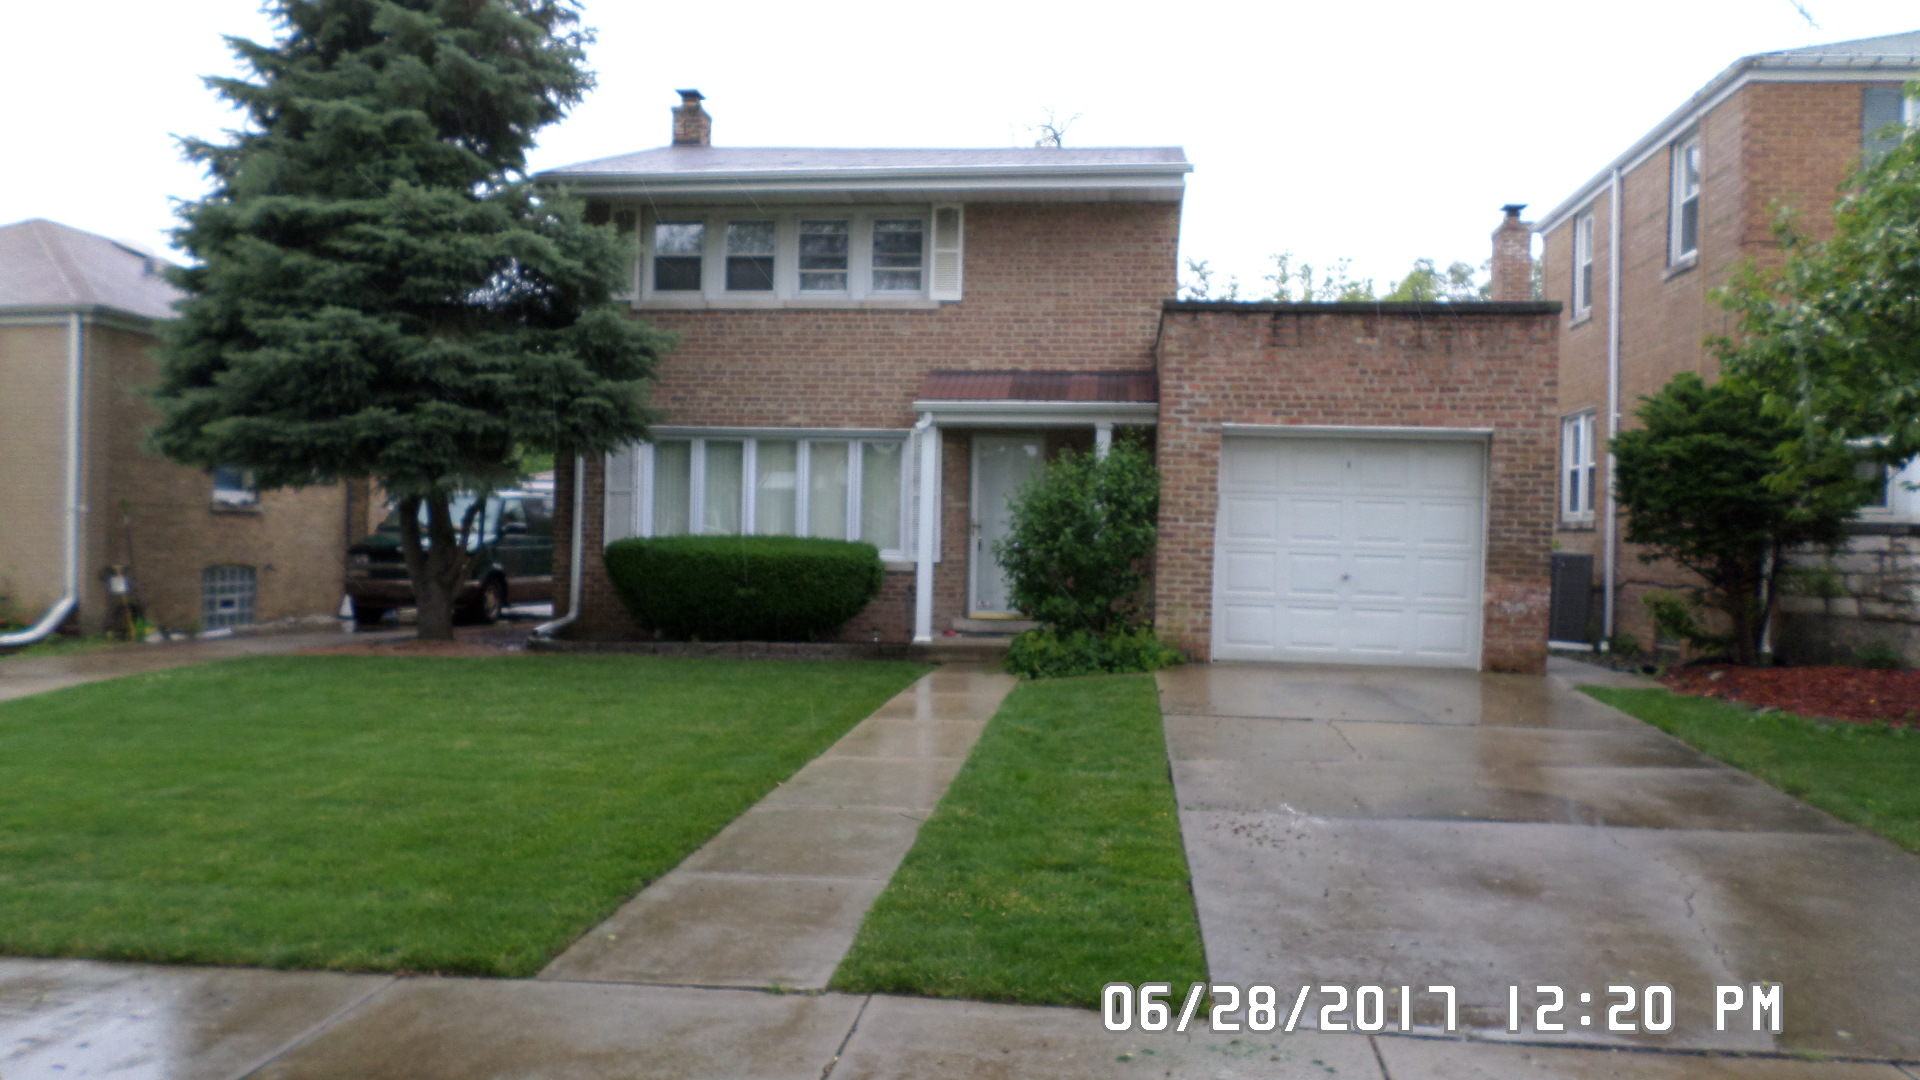 Photo of 1828 North 73rd Avenue Elmwood Park IL 60707